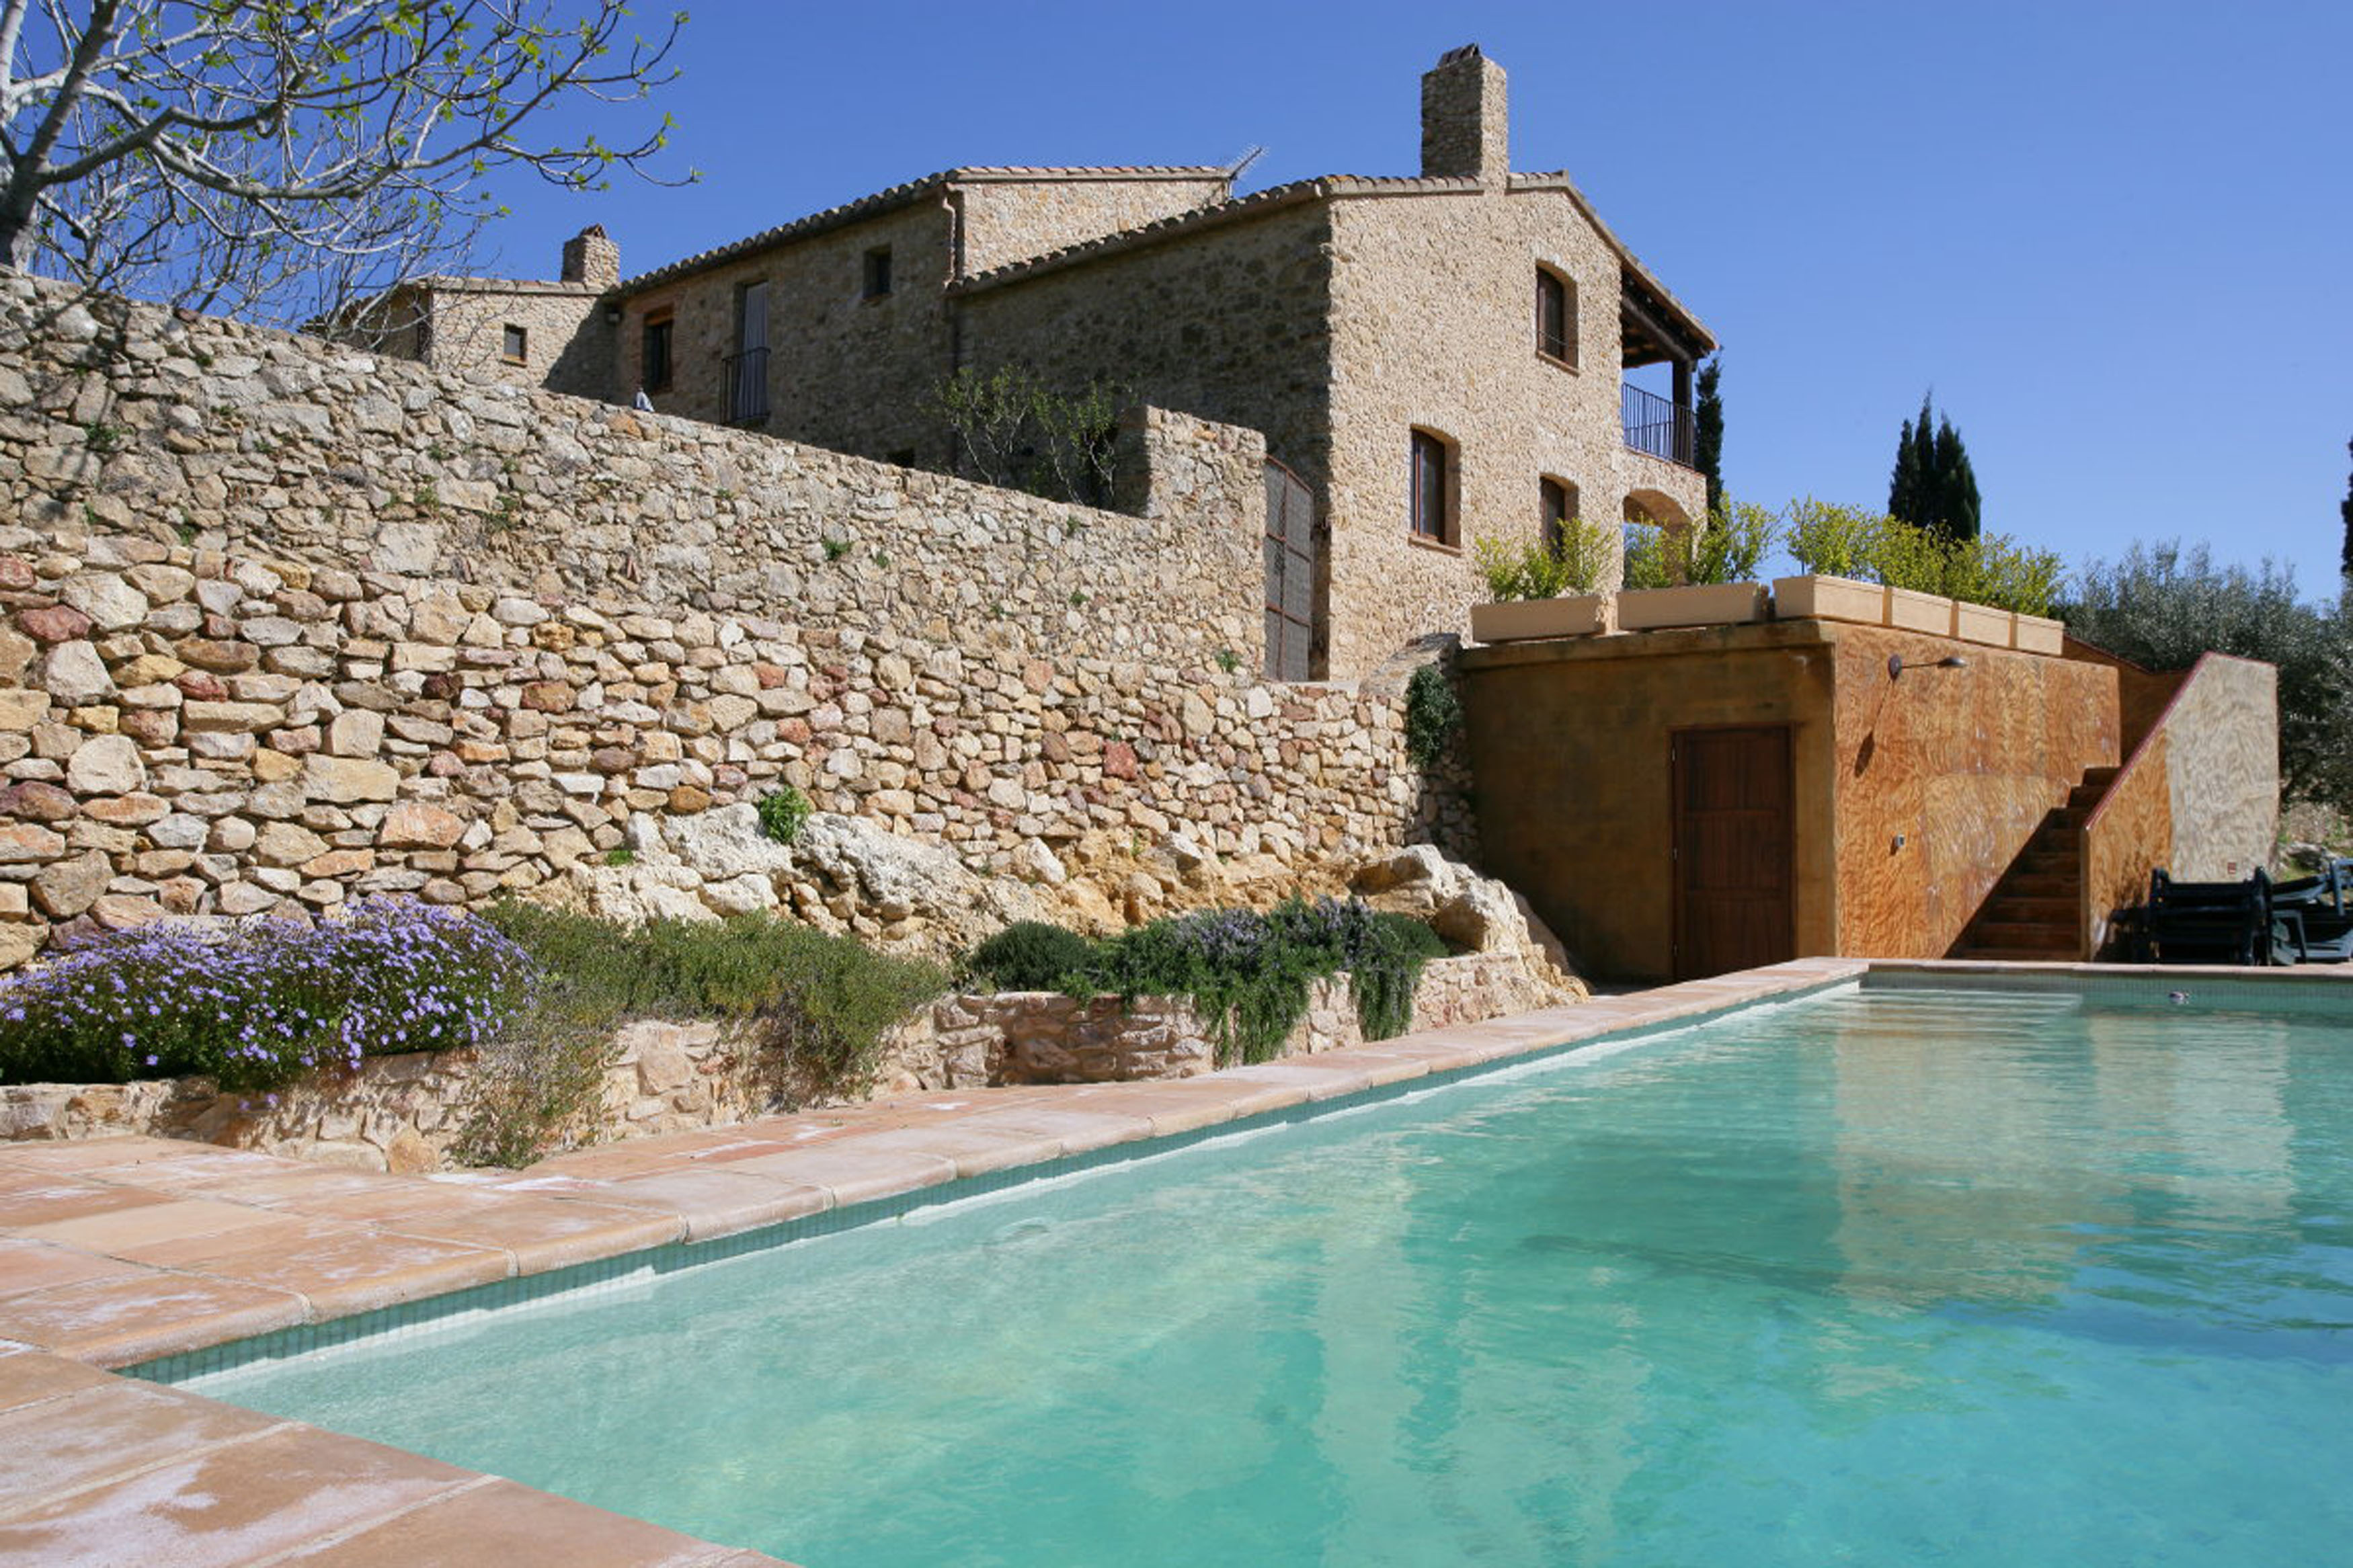 Single Family Home for Sale at Country house completely refurbished Other Cities Baix Emporda, Barcelona, 17001 Spain